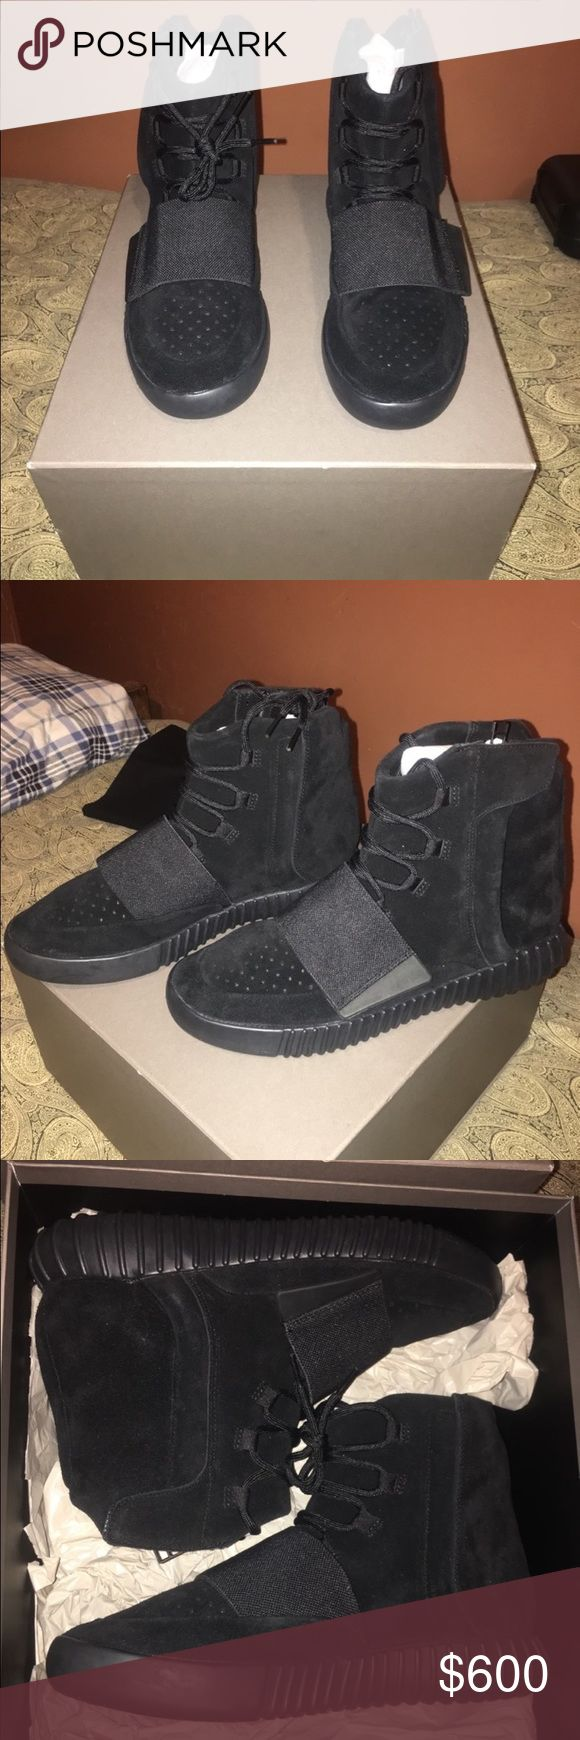 Yeezy Boost 750 Triple black size 10 | DeadStock | Never Worn | Receipt Present | Comment Before Purchase Yeezy Shoes Sneakers